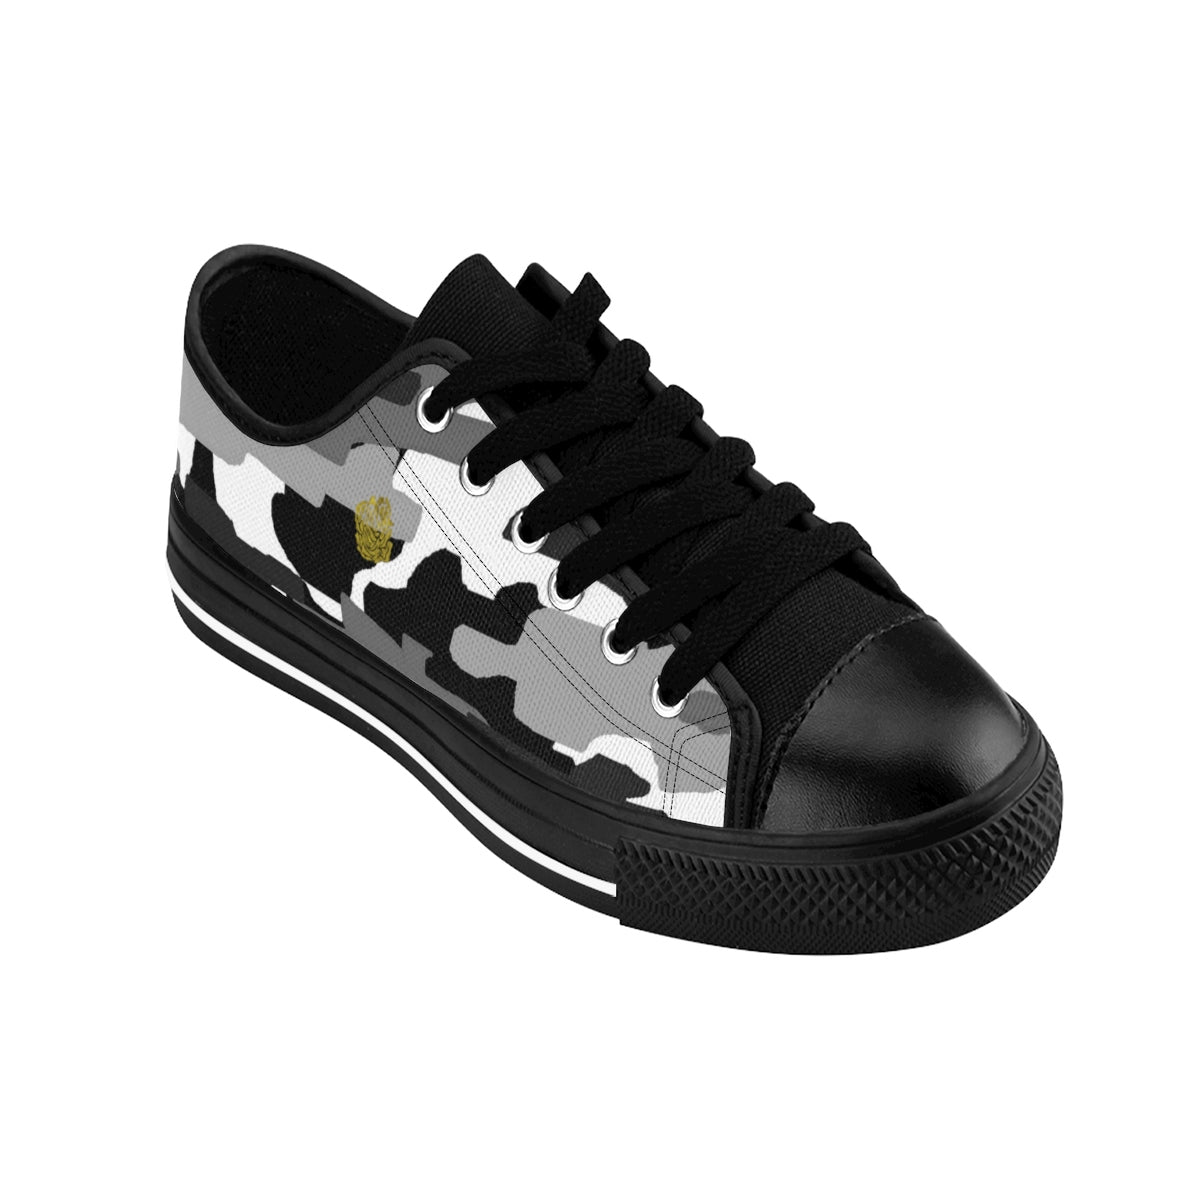 Gray Camo Men's Low Tops, Camouflage Military Print Designer Men's Low Top Sneakers-Men's Low Top Sneakers-Black-US 9-Heidi Kimura Art LLC